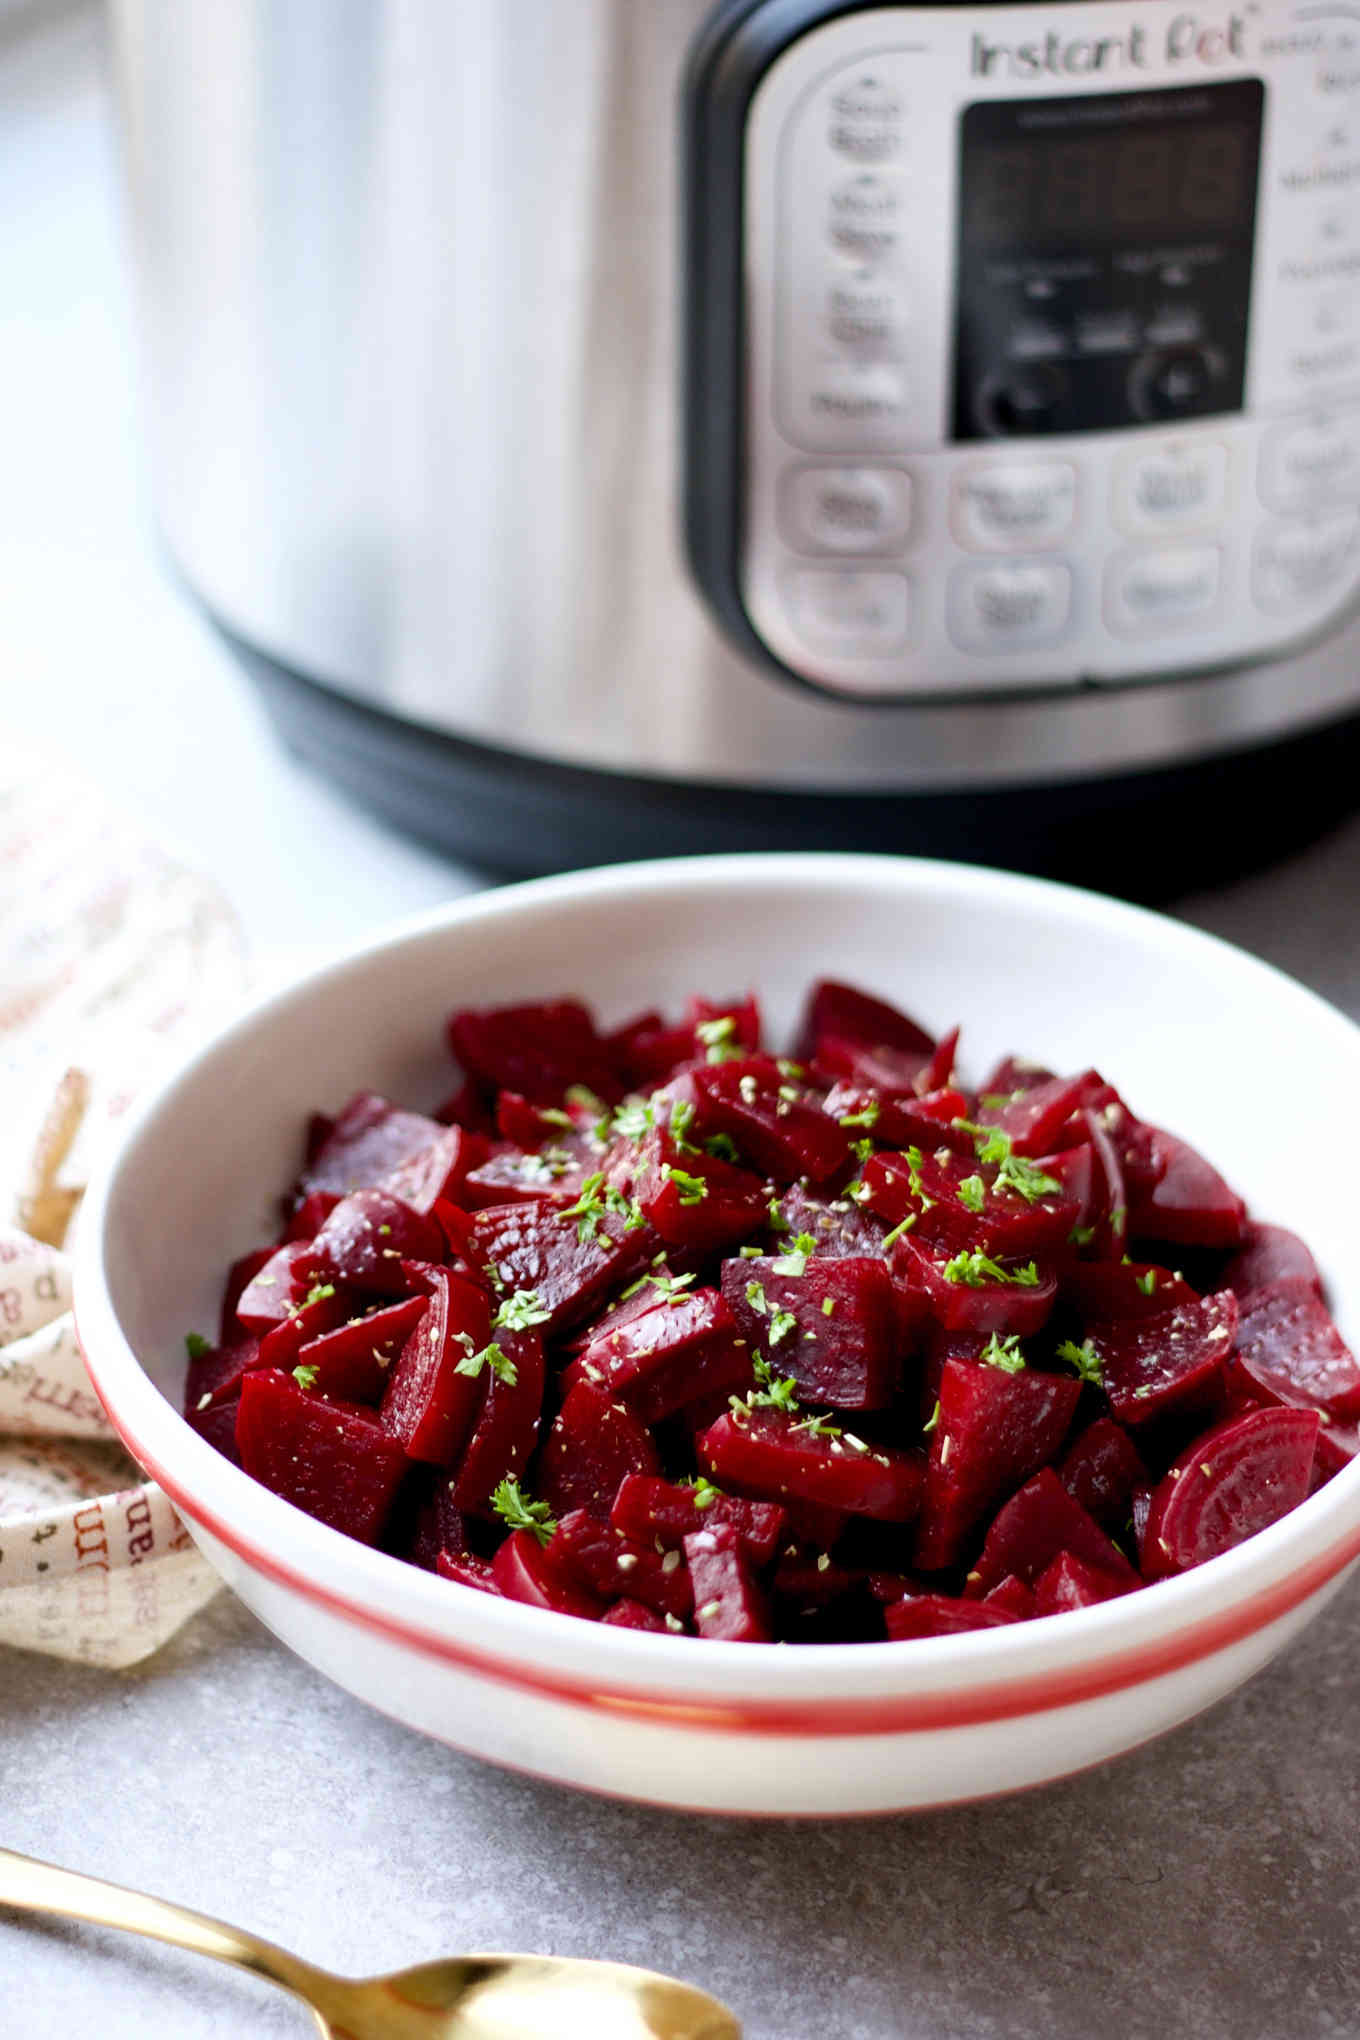 A bowl of beets salad in front of an Instant Pot.